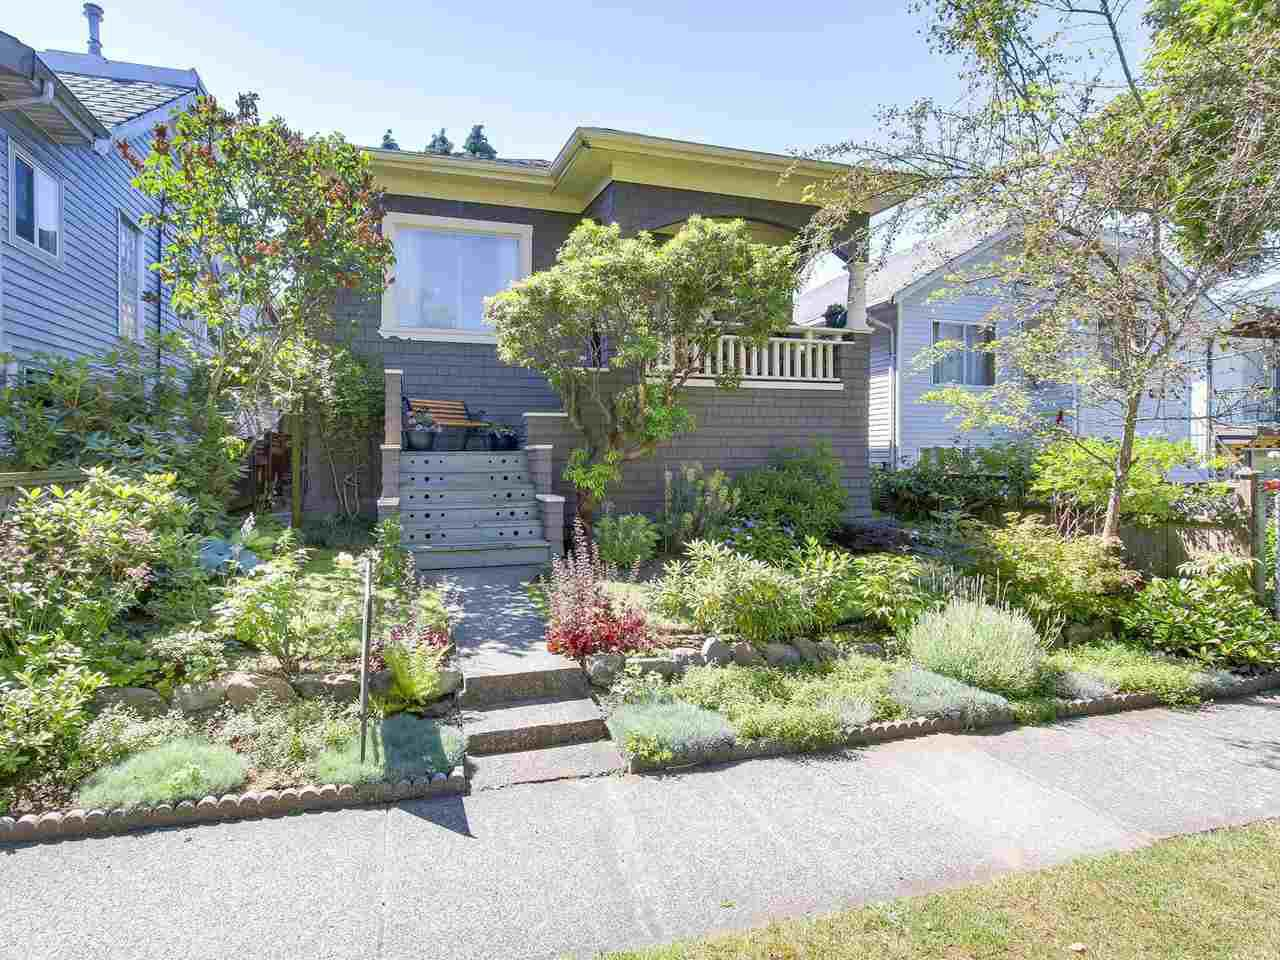 Main Photo: 5239 CHESTER Street in Vancouver: Fraser VE House for sale (Vancouver East)  : MLS®# R2186295